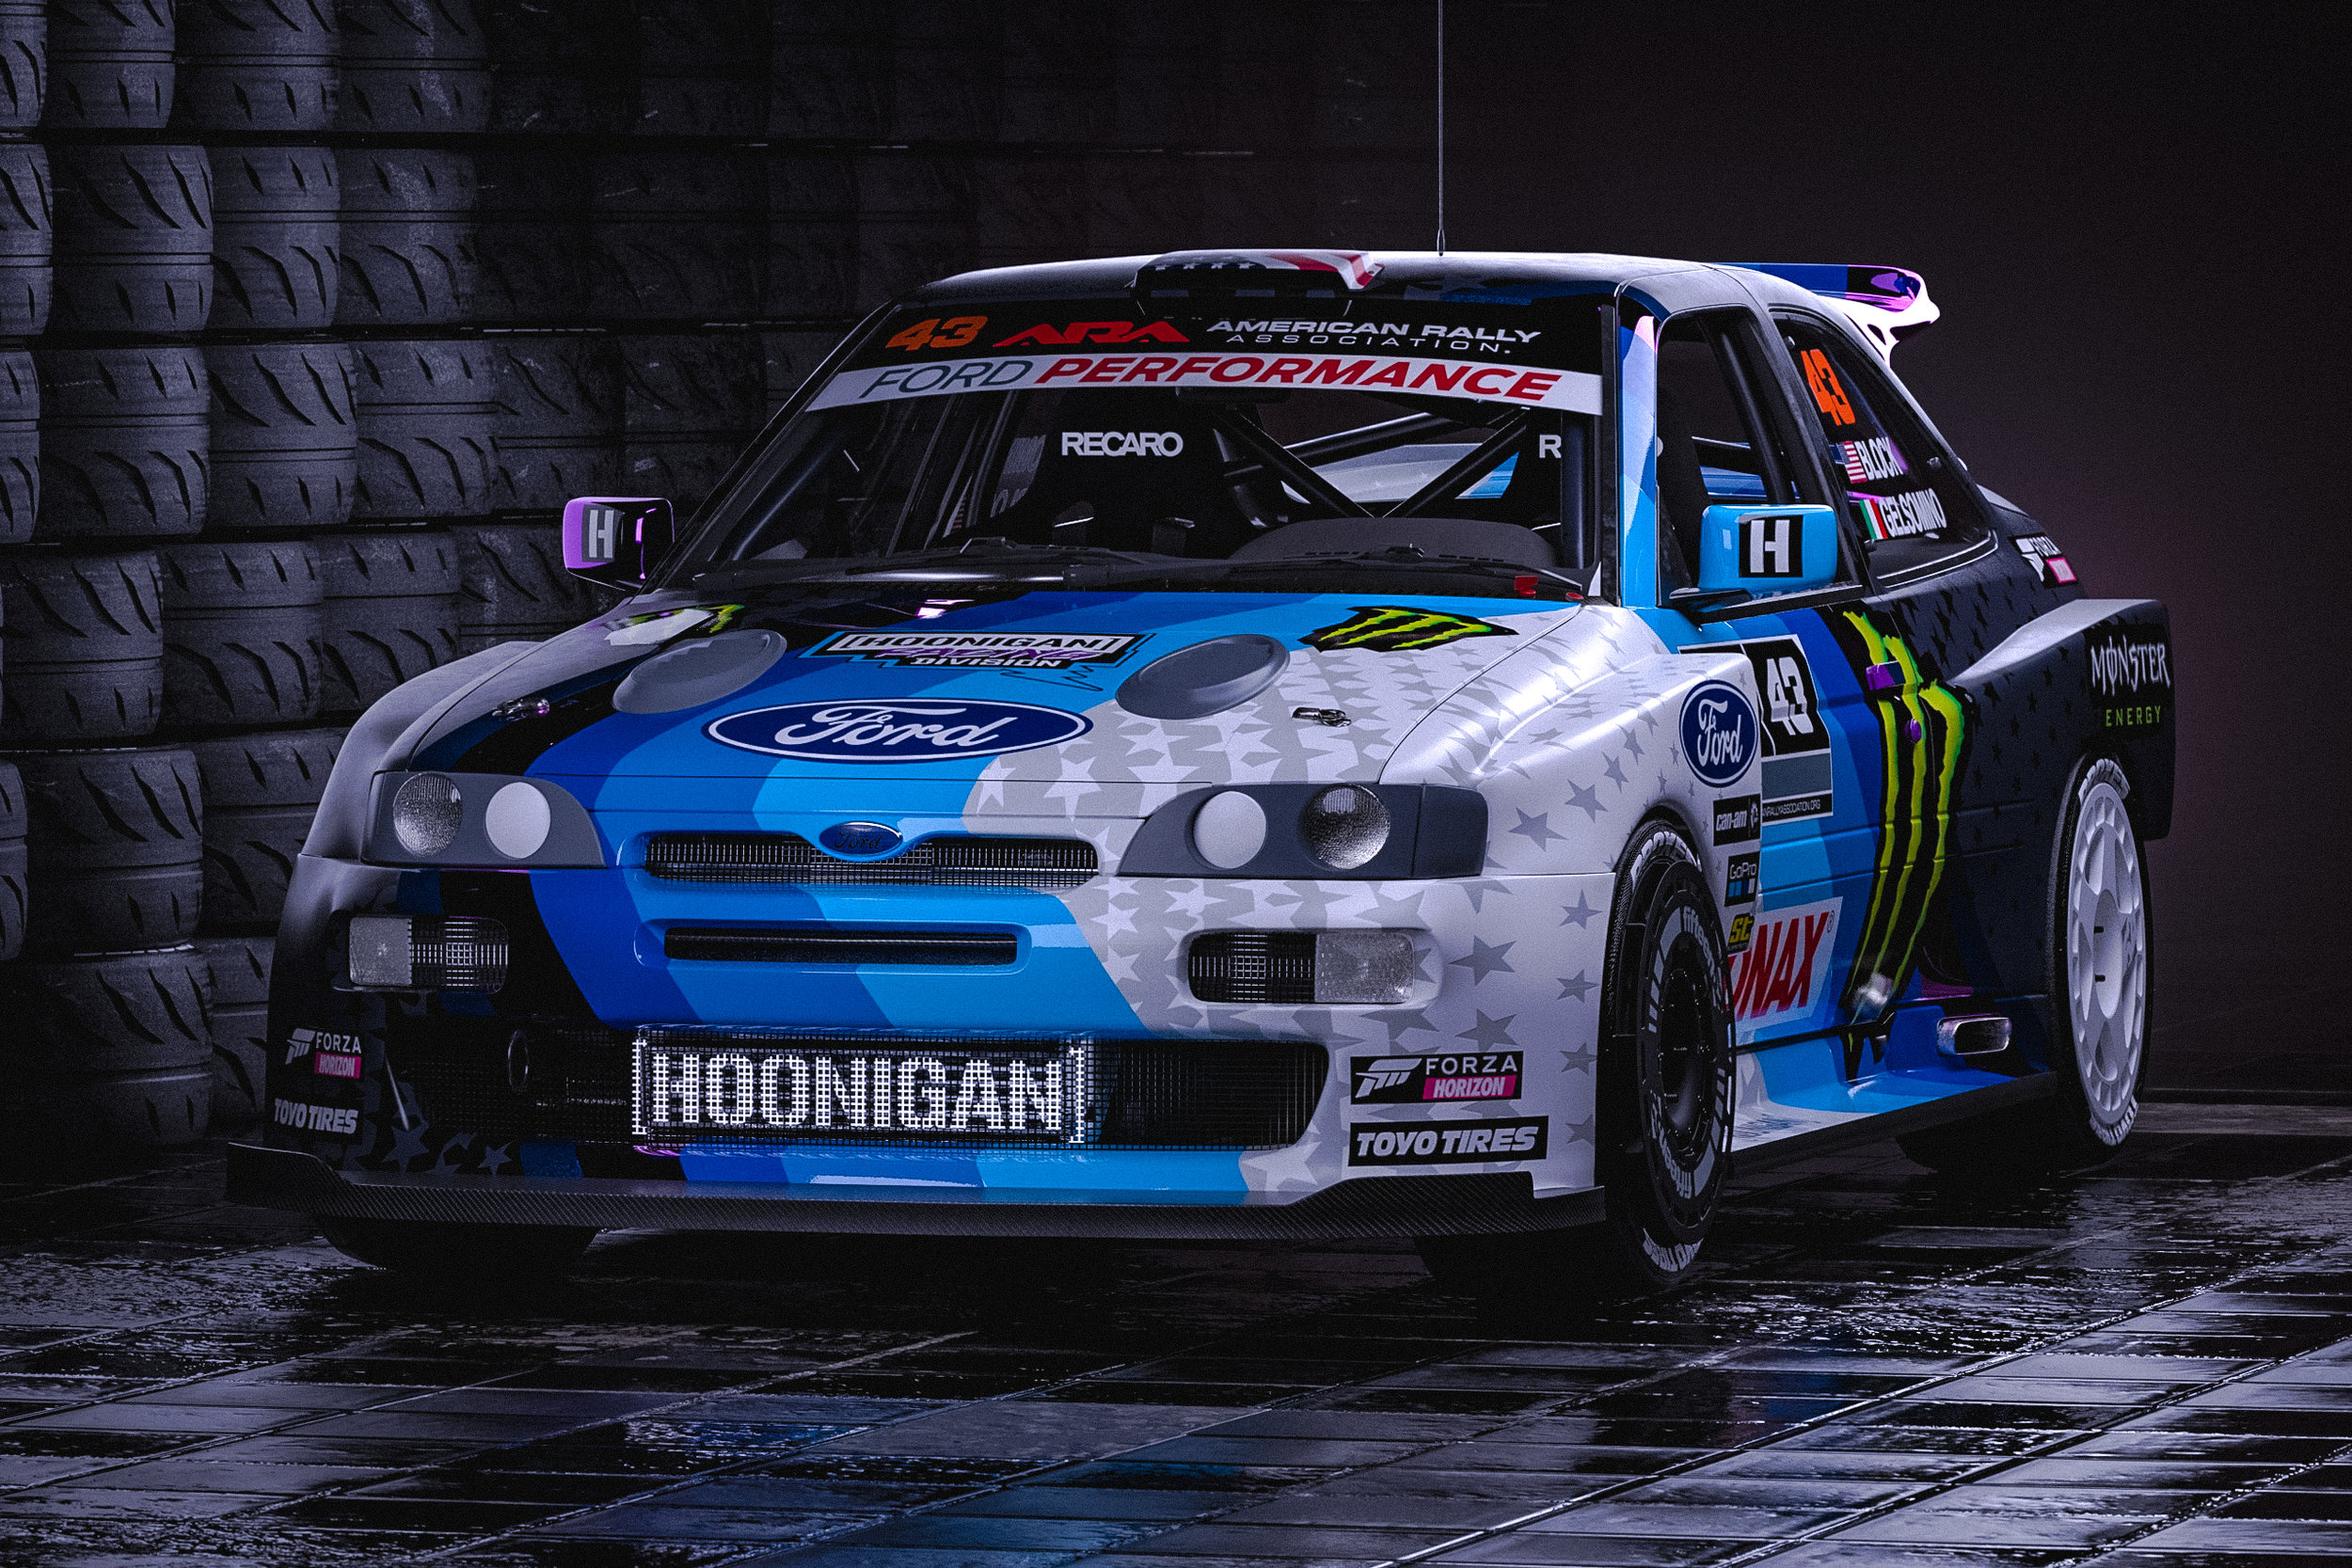 FORD_ESCORT_RS_COSWORTH_AT_013_031.jpg